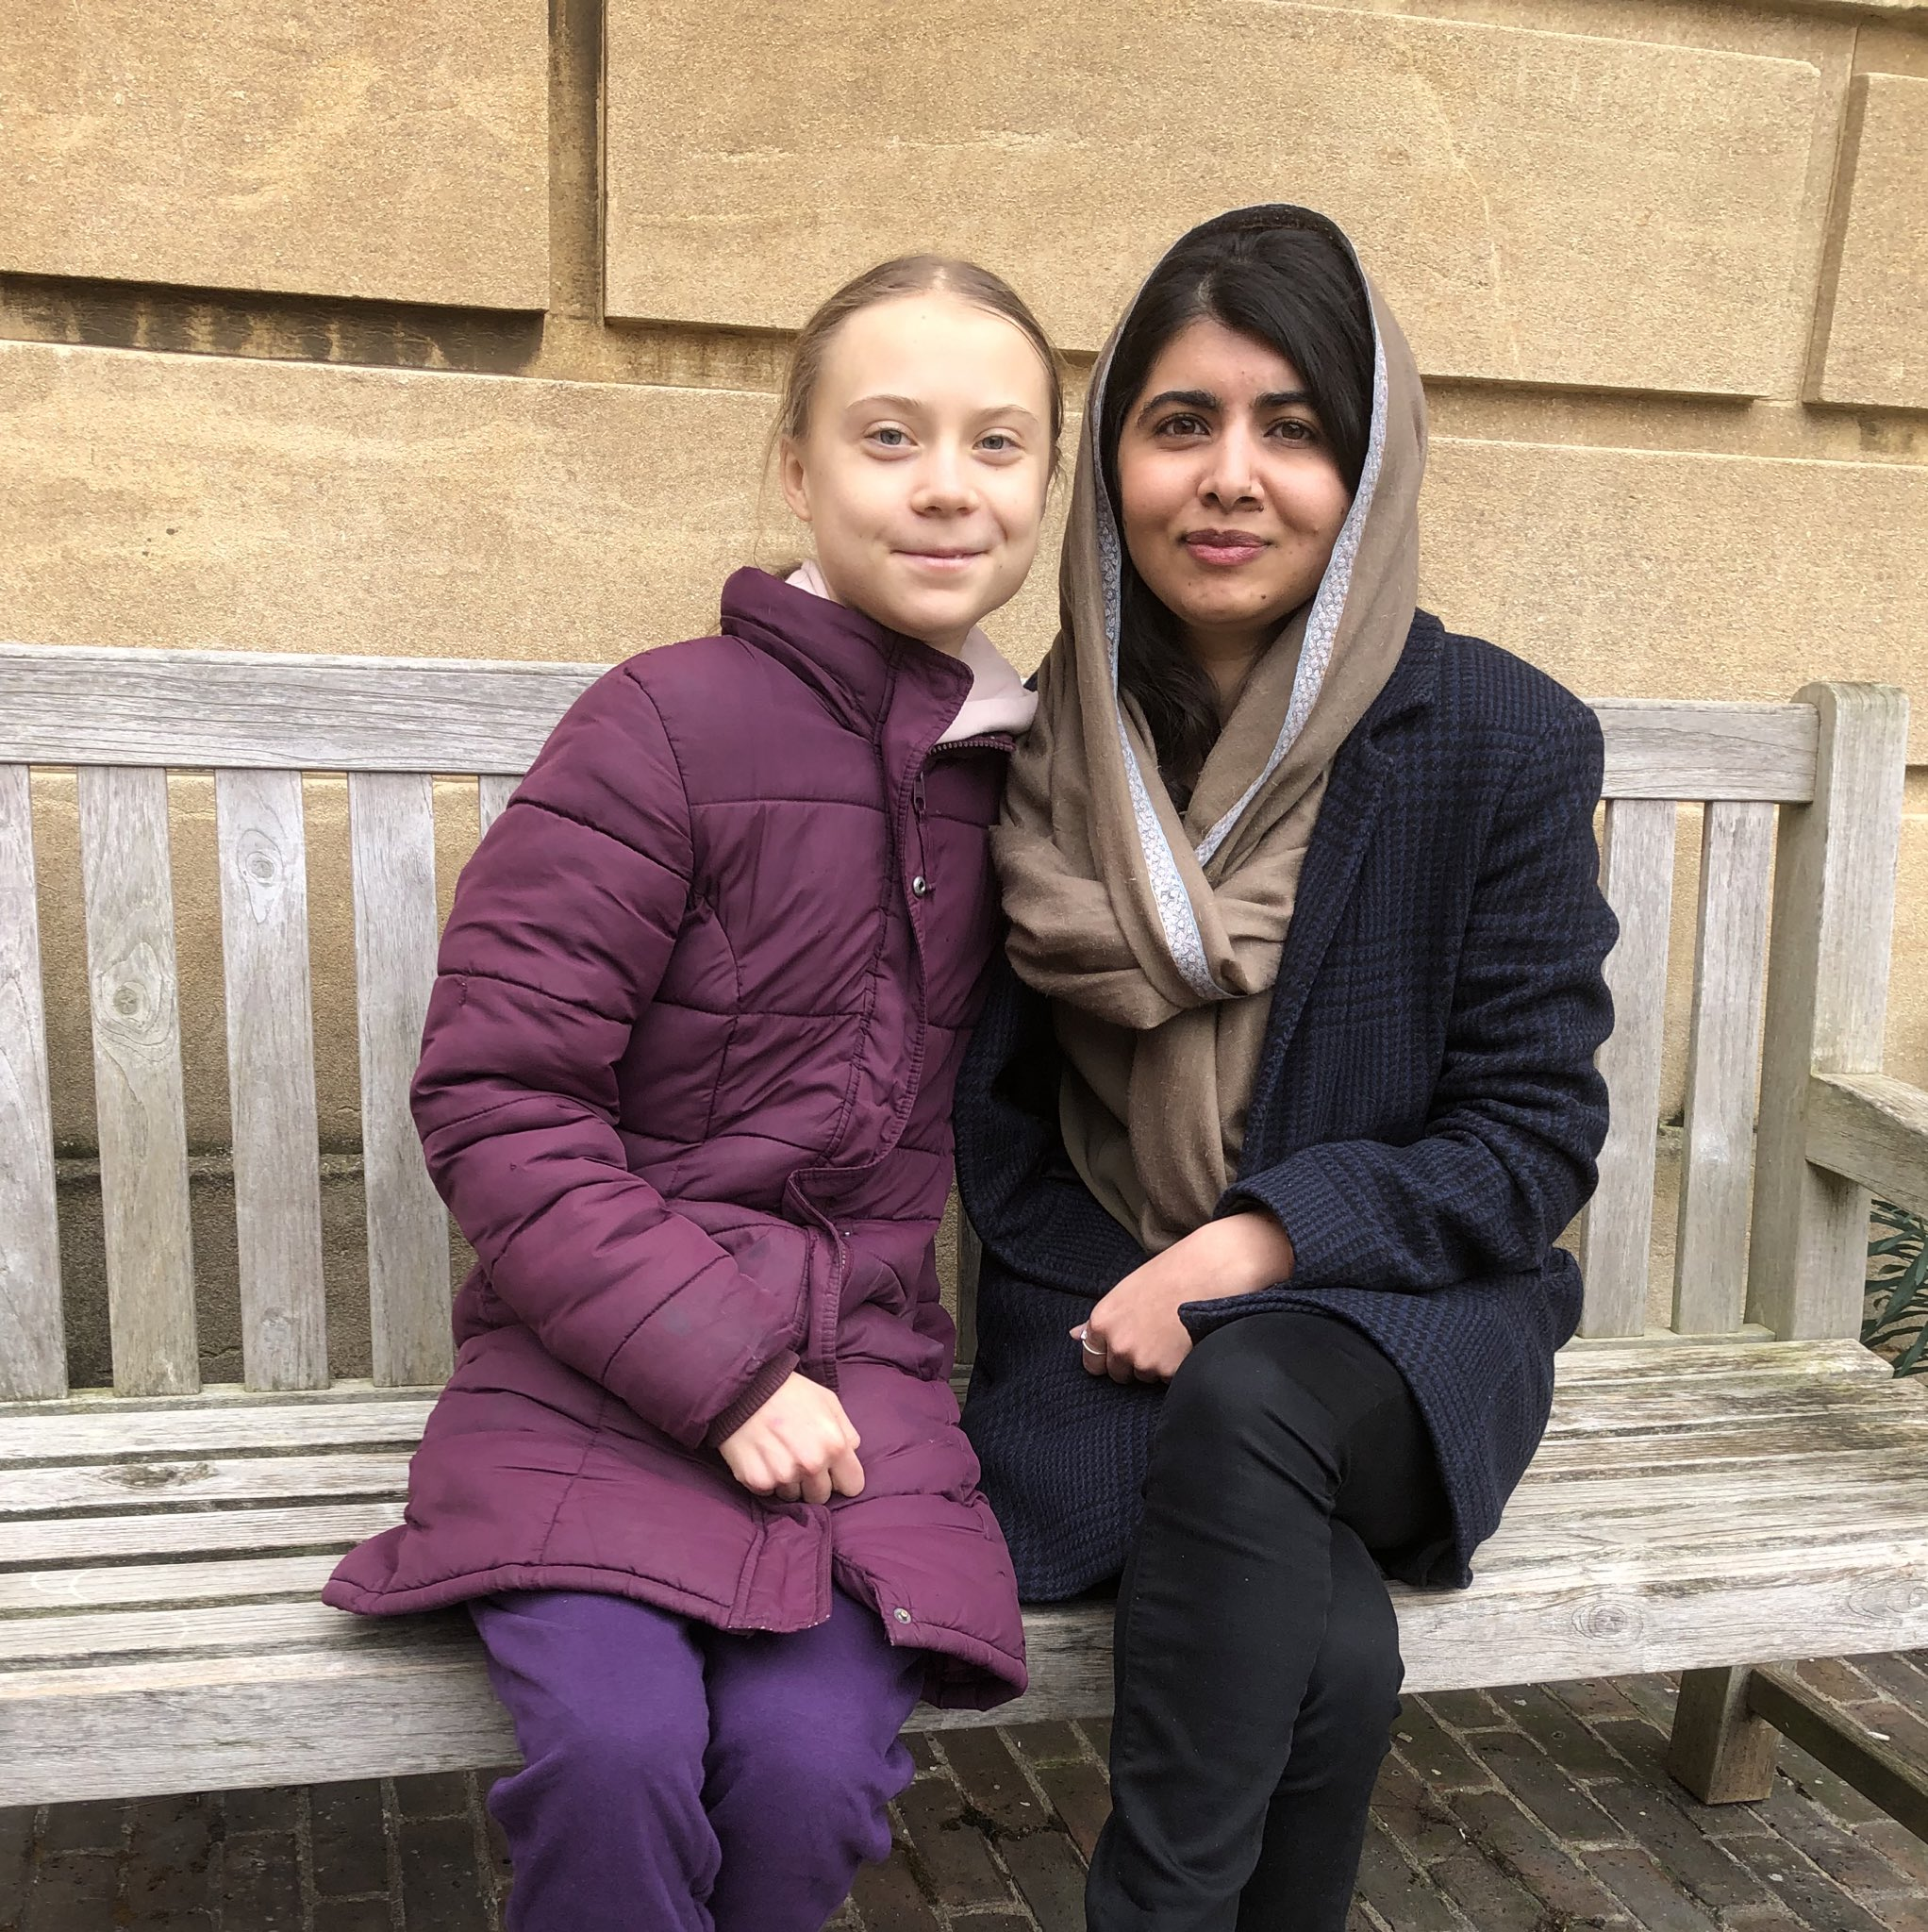 Another photo of Greta Thunberg and Malala Yousafzai.